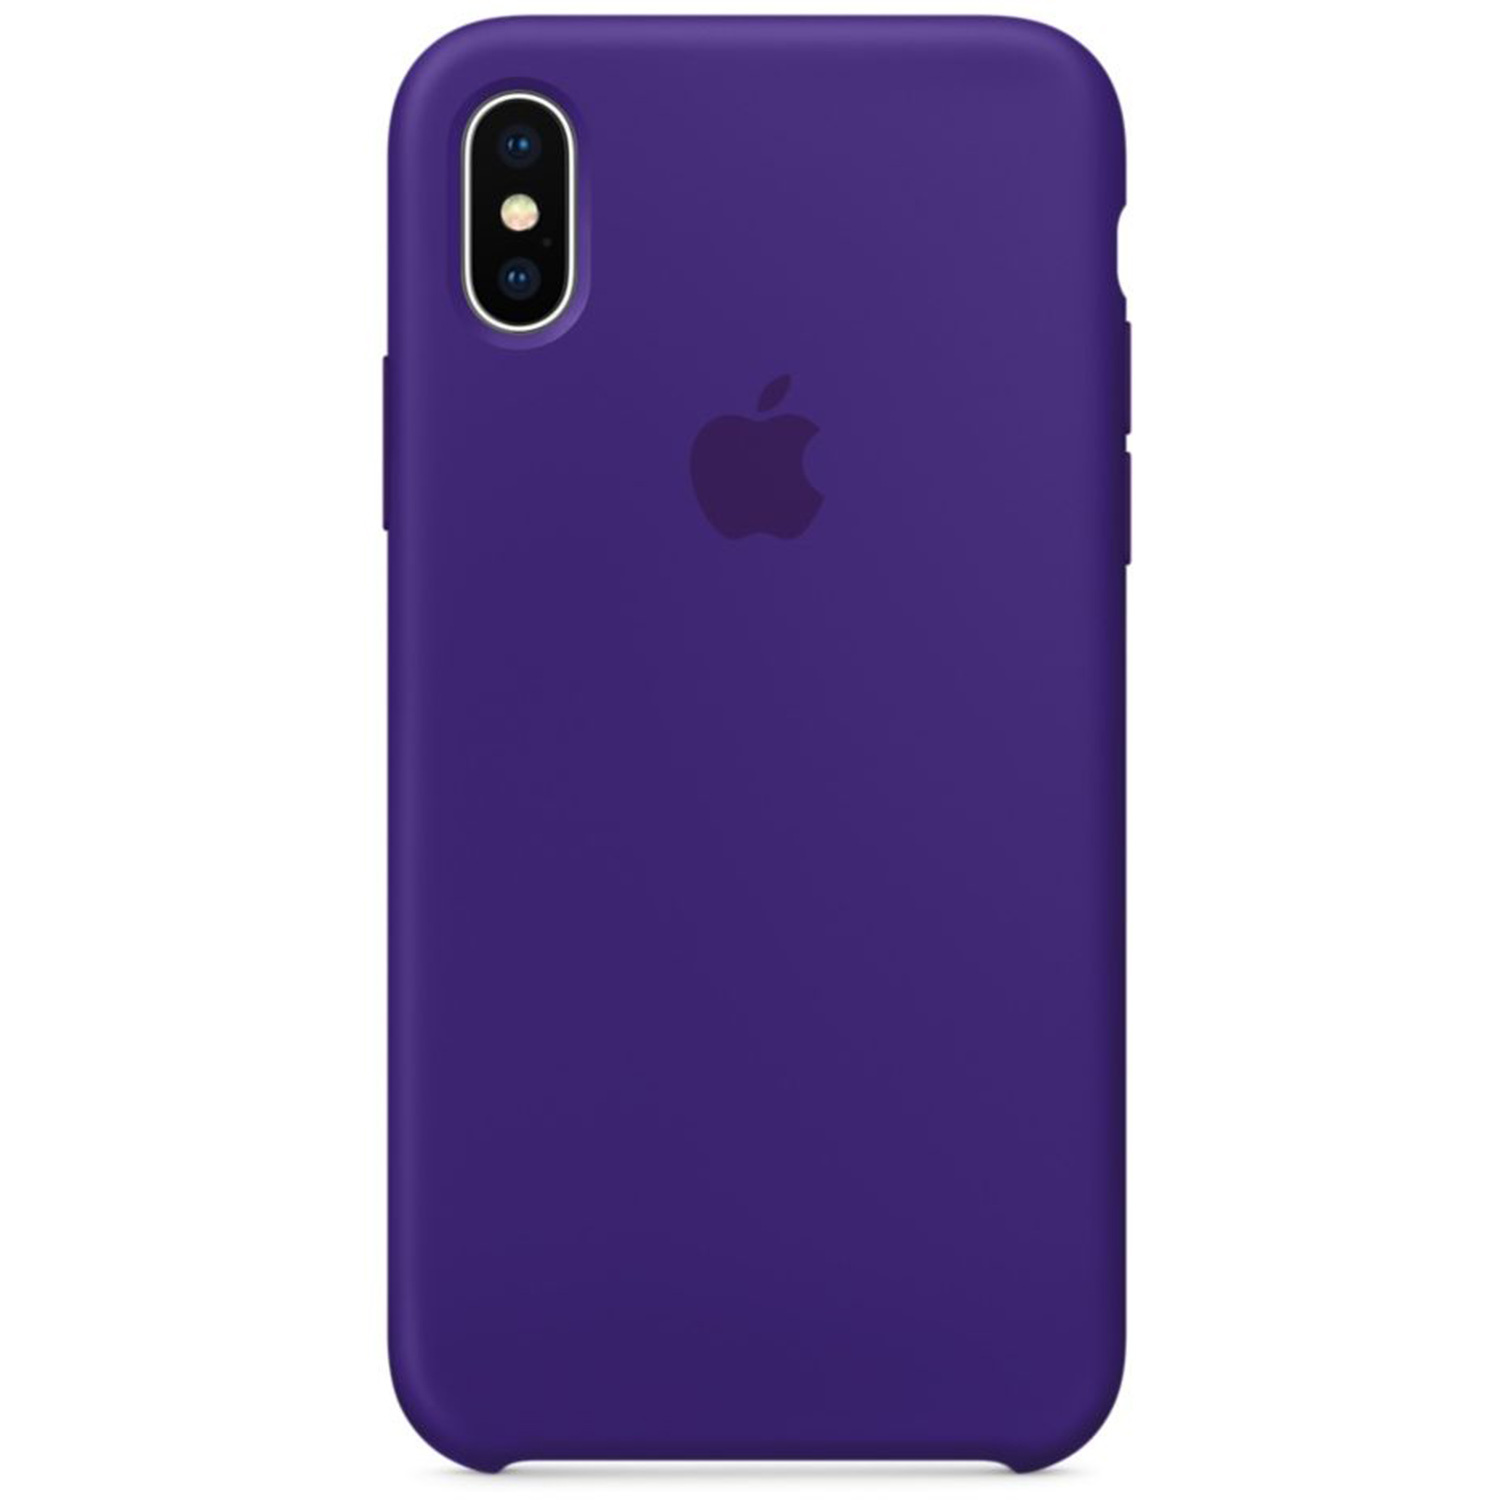 Silicone Backcover voor de iPhone X Ultra Violet